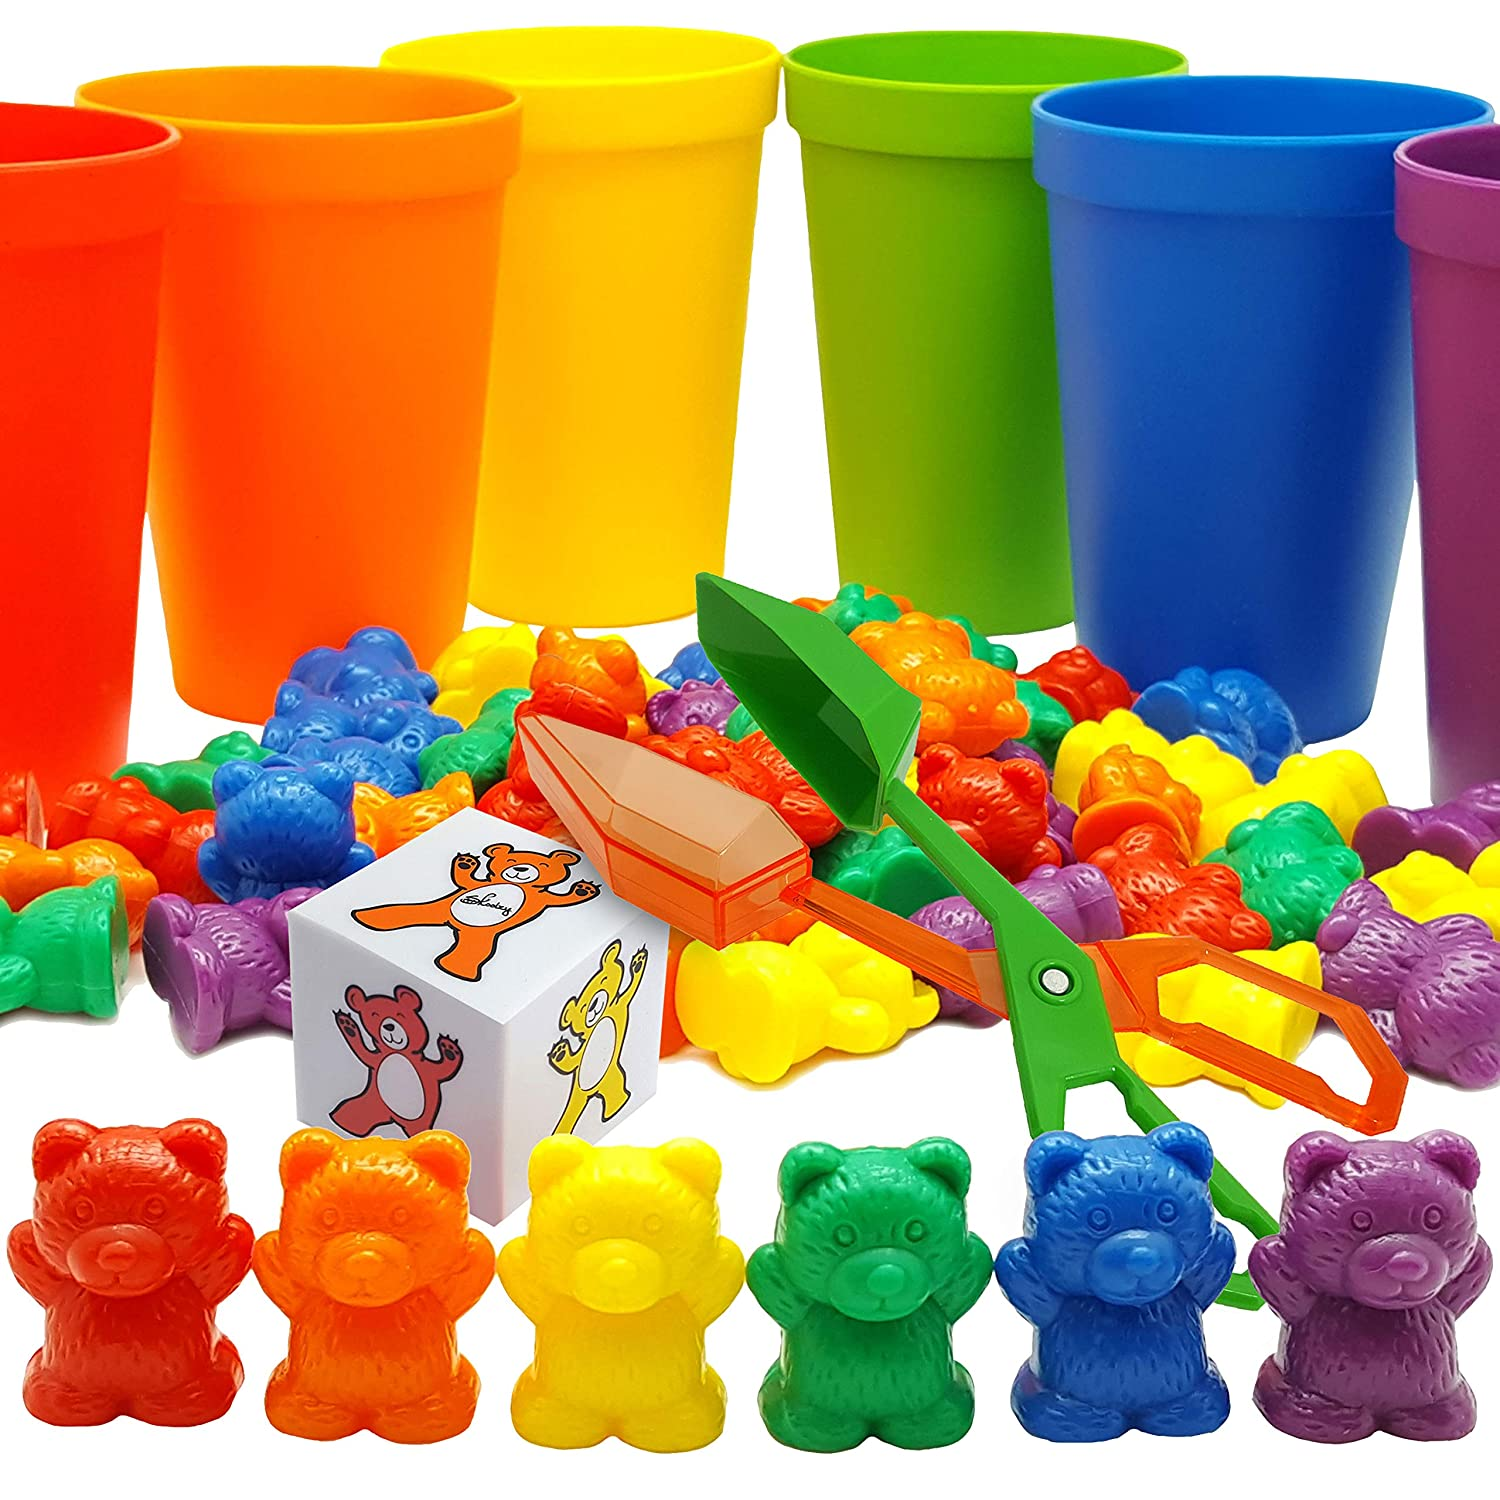 Skoolzy Rainbow Counting Bears with Matching Sorting Cups, Bear Counters and Dice Math Toddler Games 70pc Set - Bonus Scoop Tongs